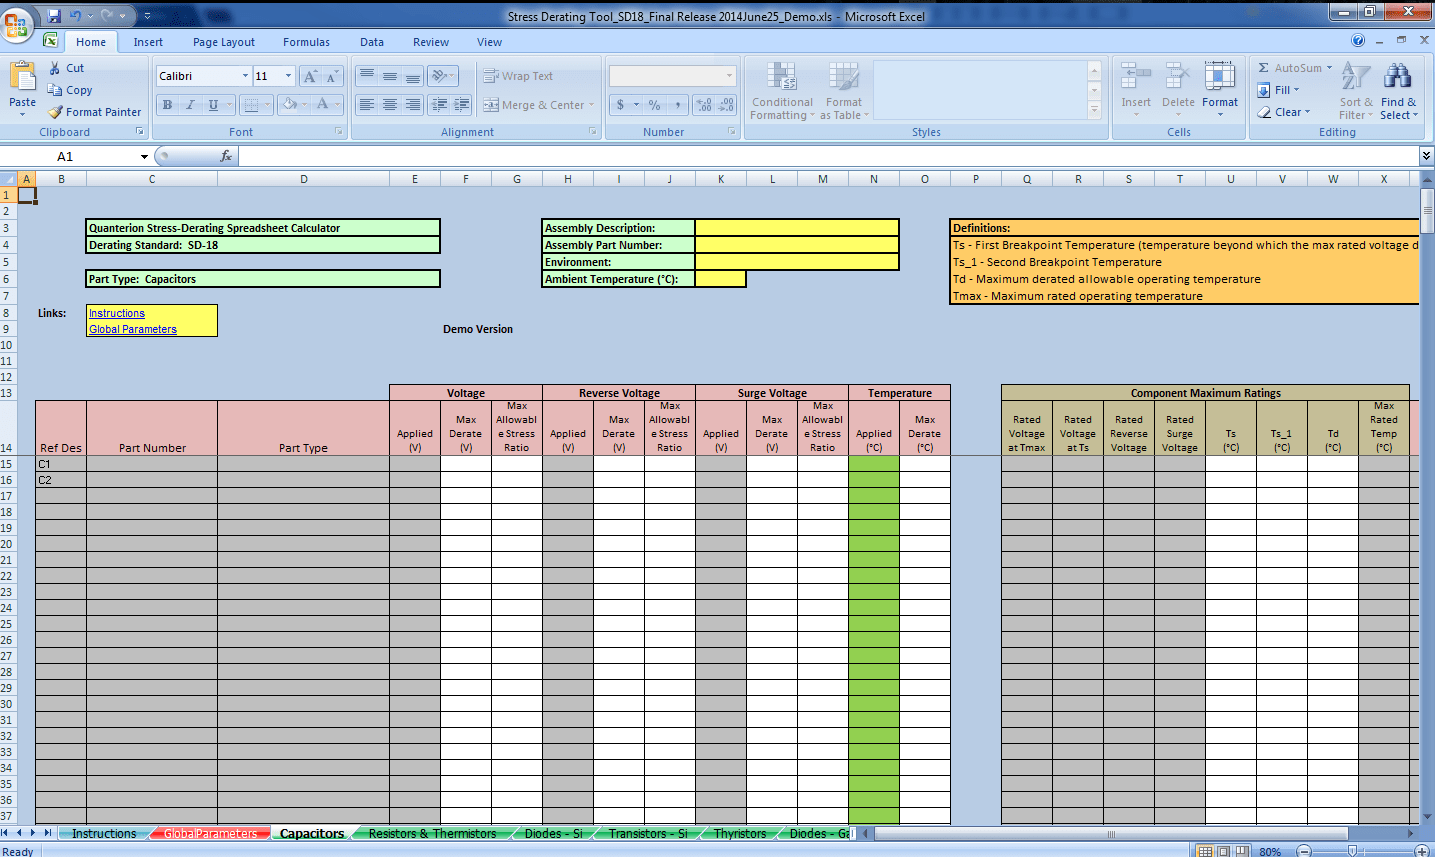 Stress Derating Spreadsheet Calculator Sd 18 Derating Standard Rmqsi Knowledge Center